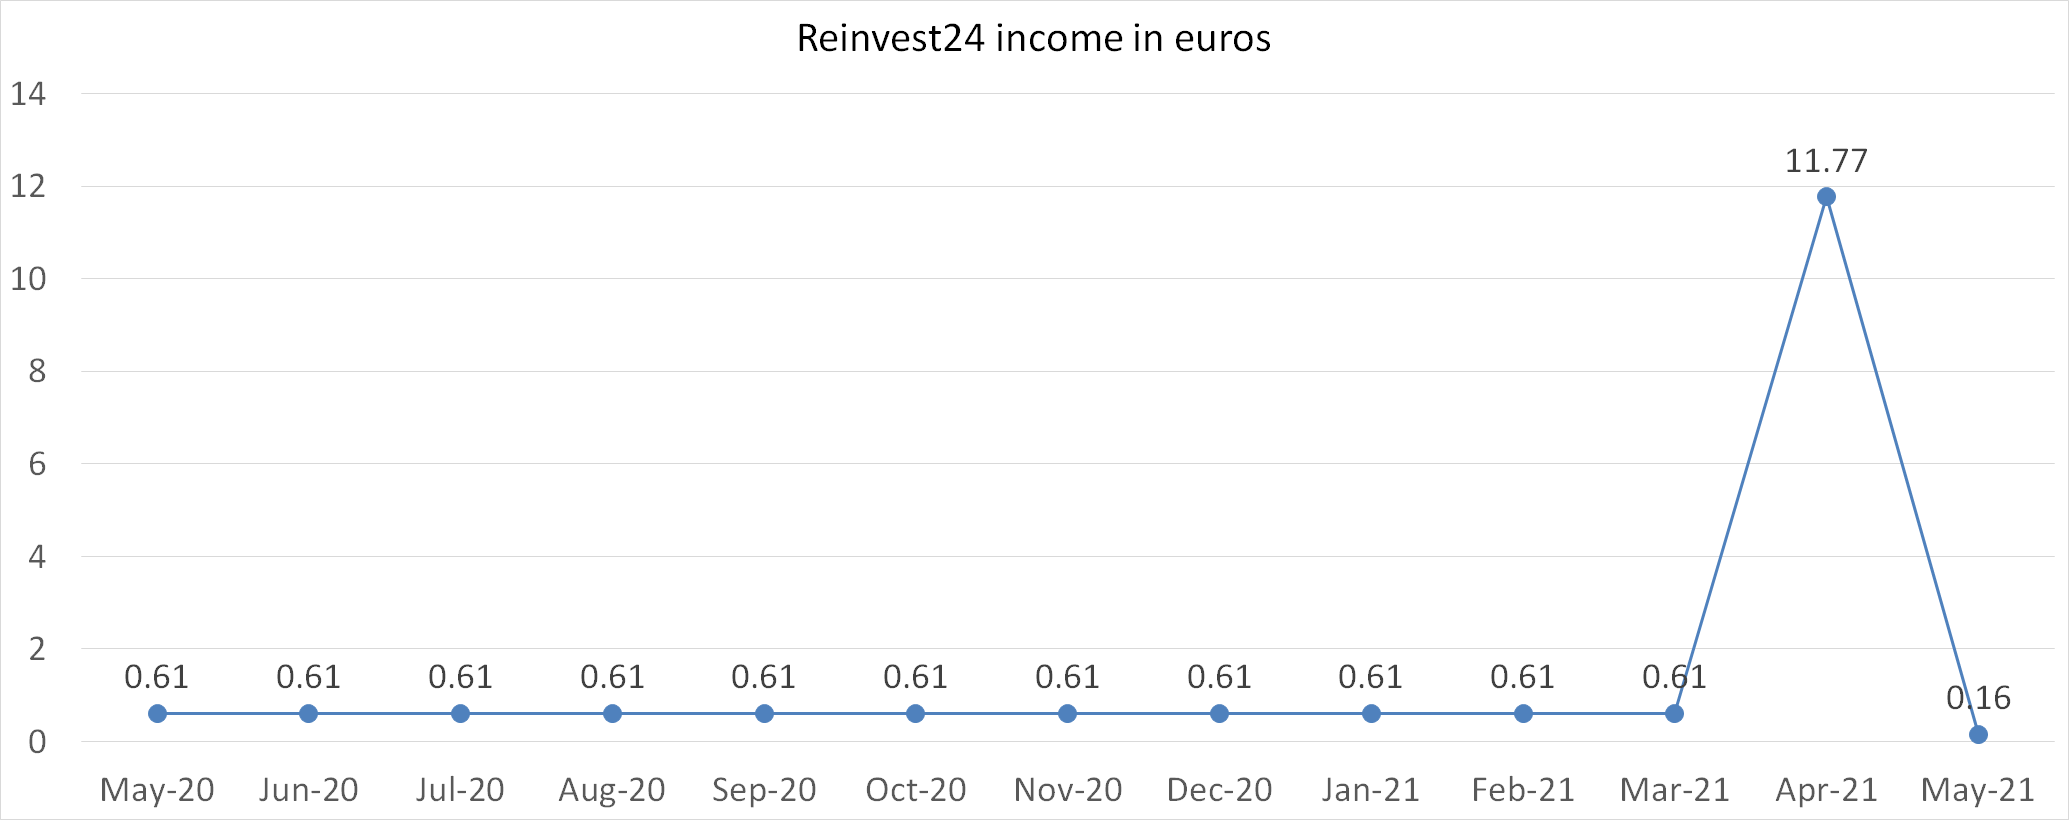 reinvest24 income in euros in may 2021